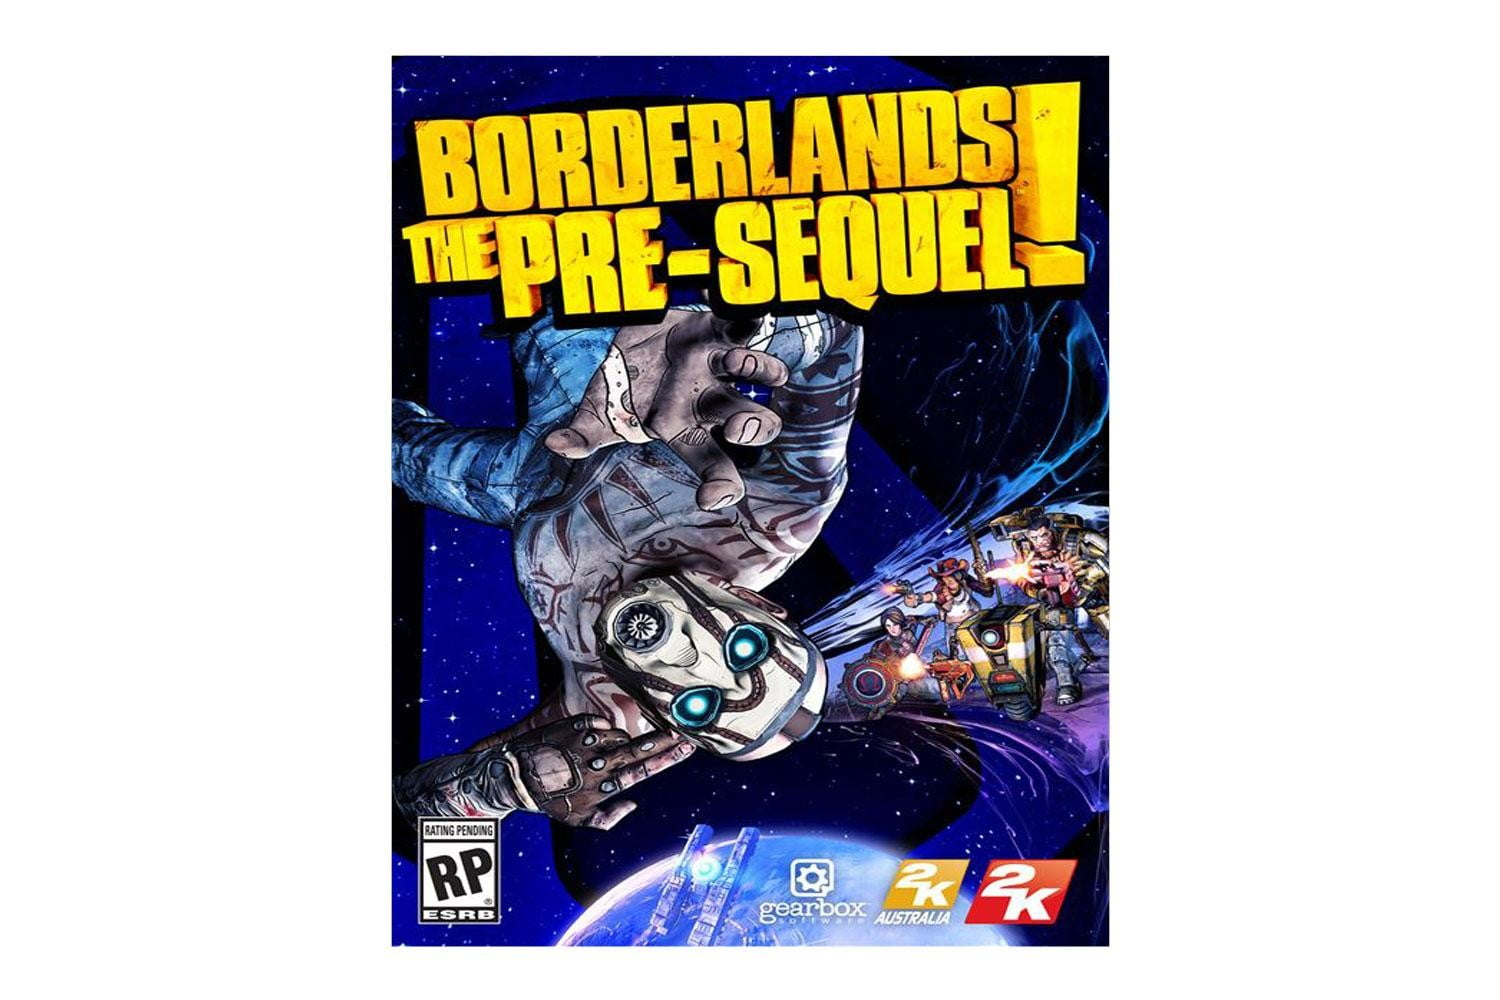 Borderlands-The-Presequal-cover-art